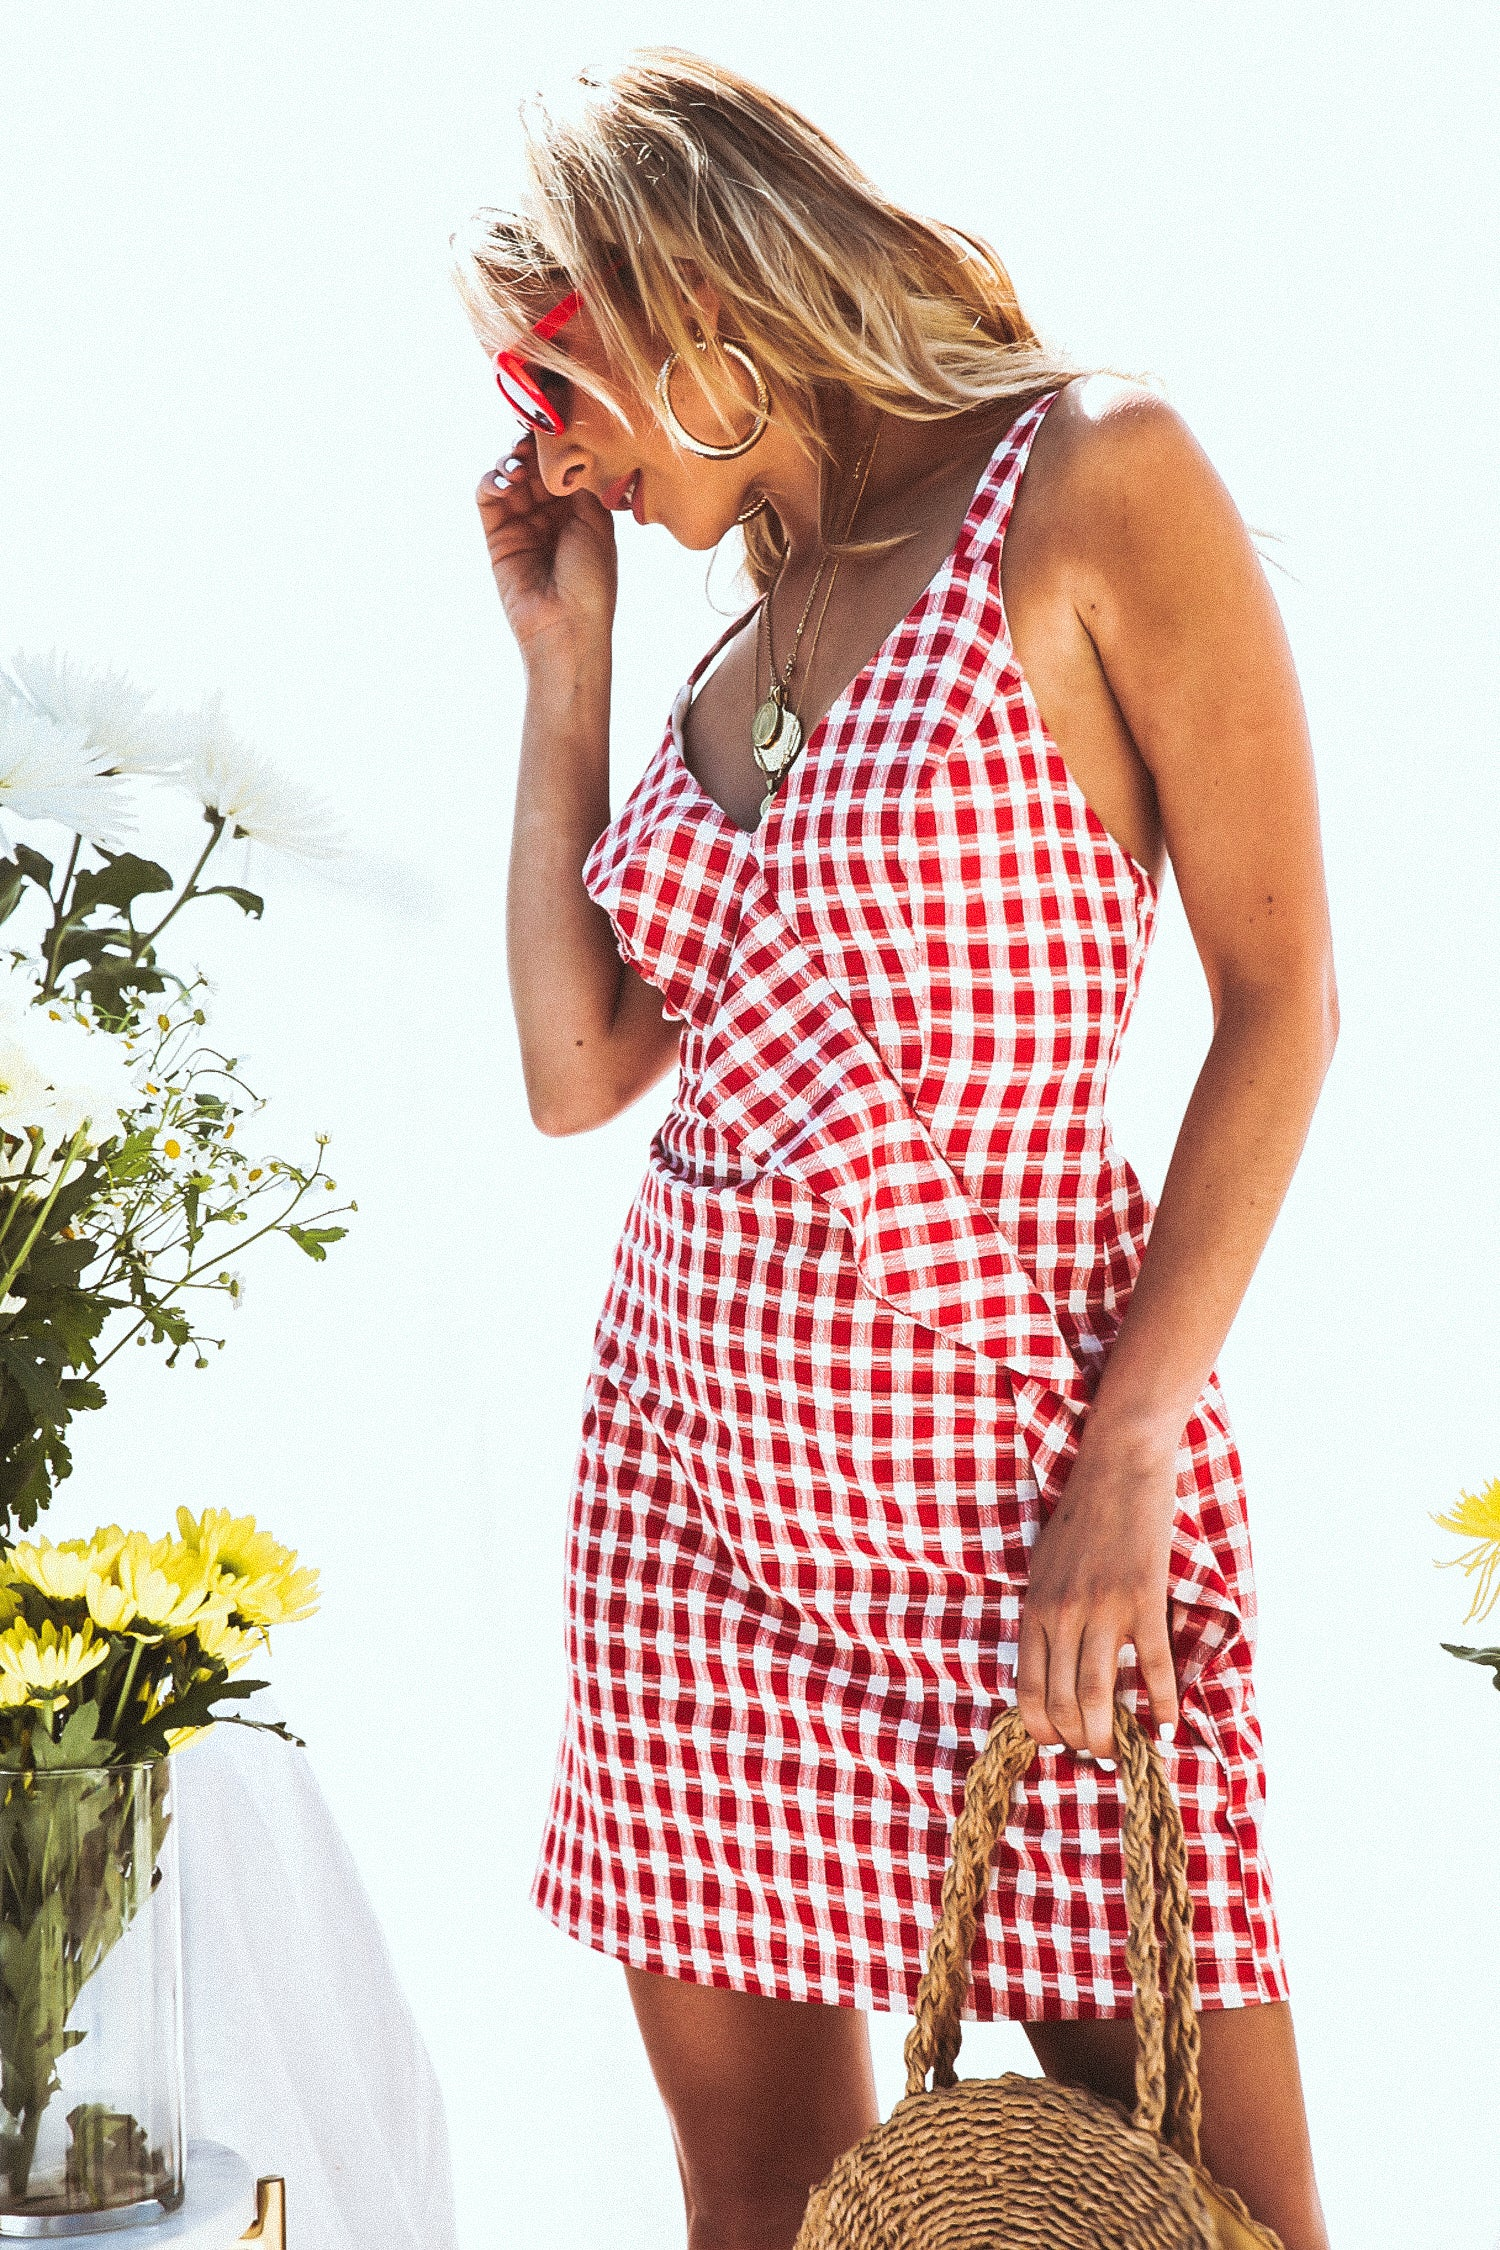 ad0f80833eaec Gingham Mini Dress with Ruffle - Red